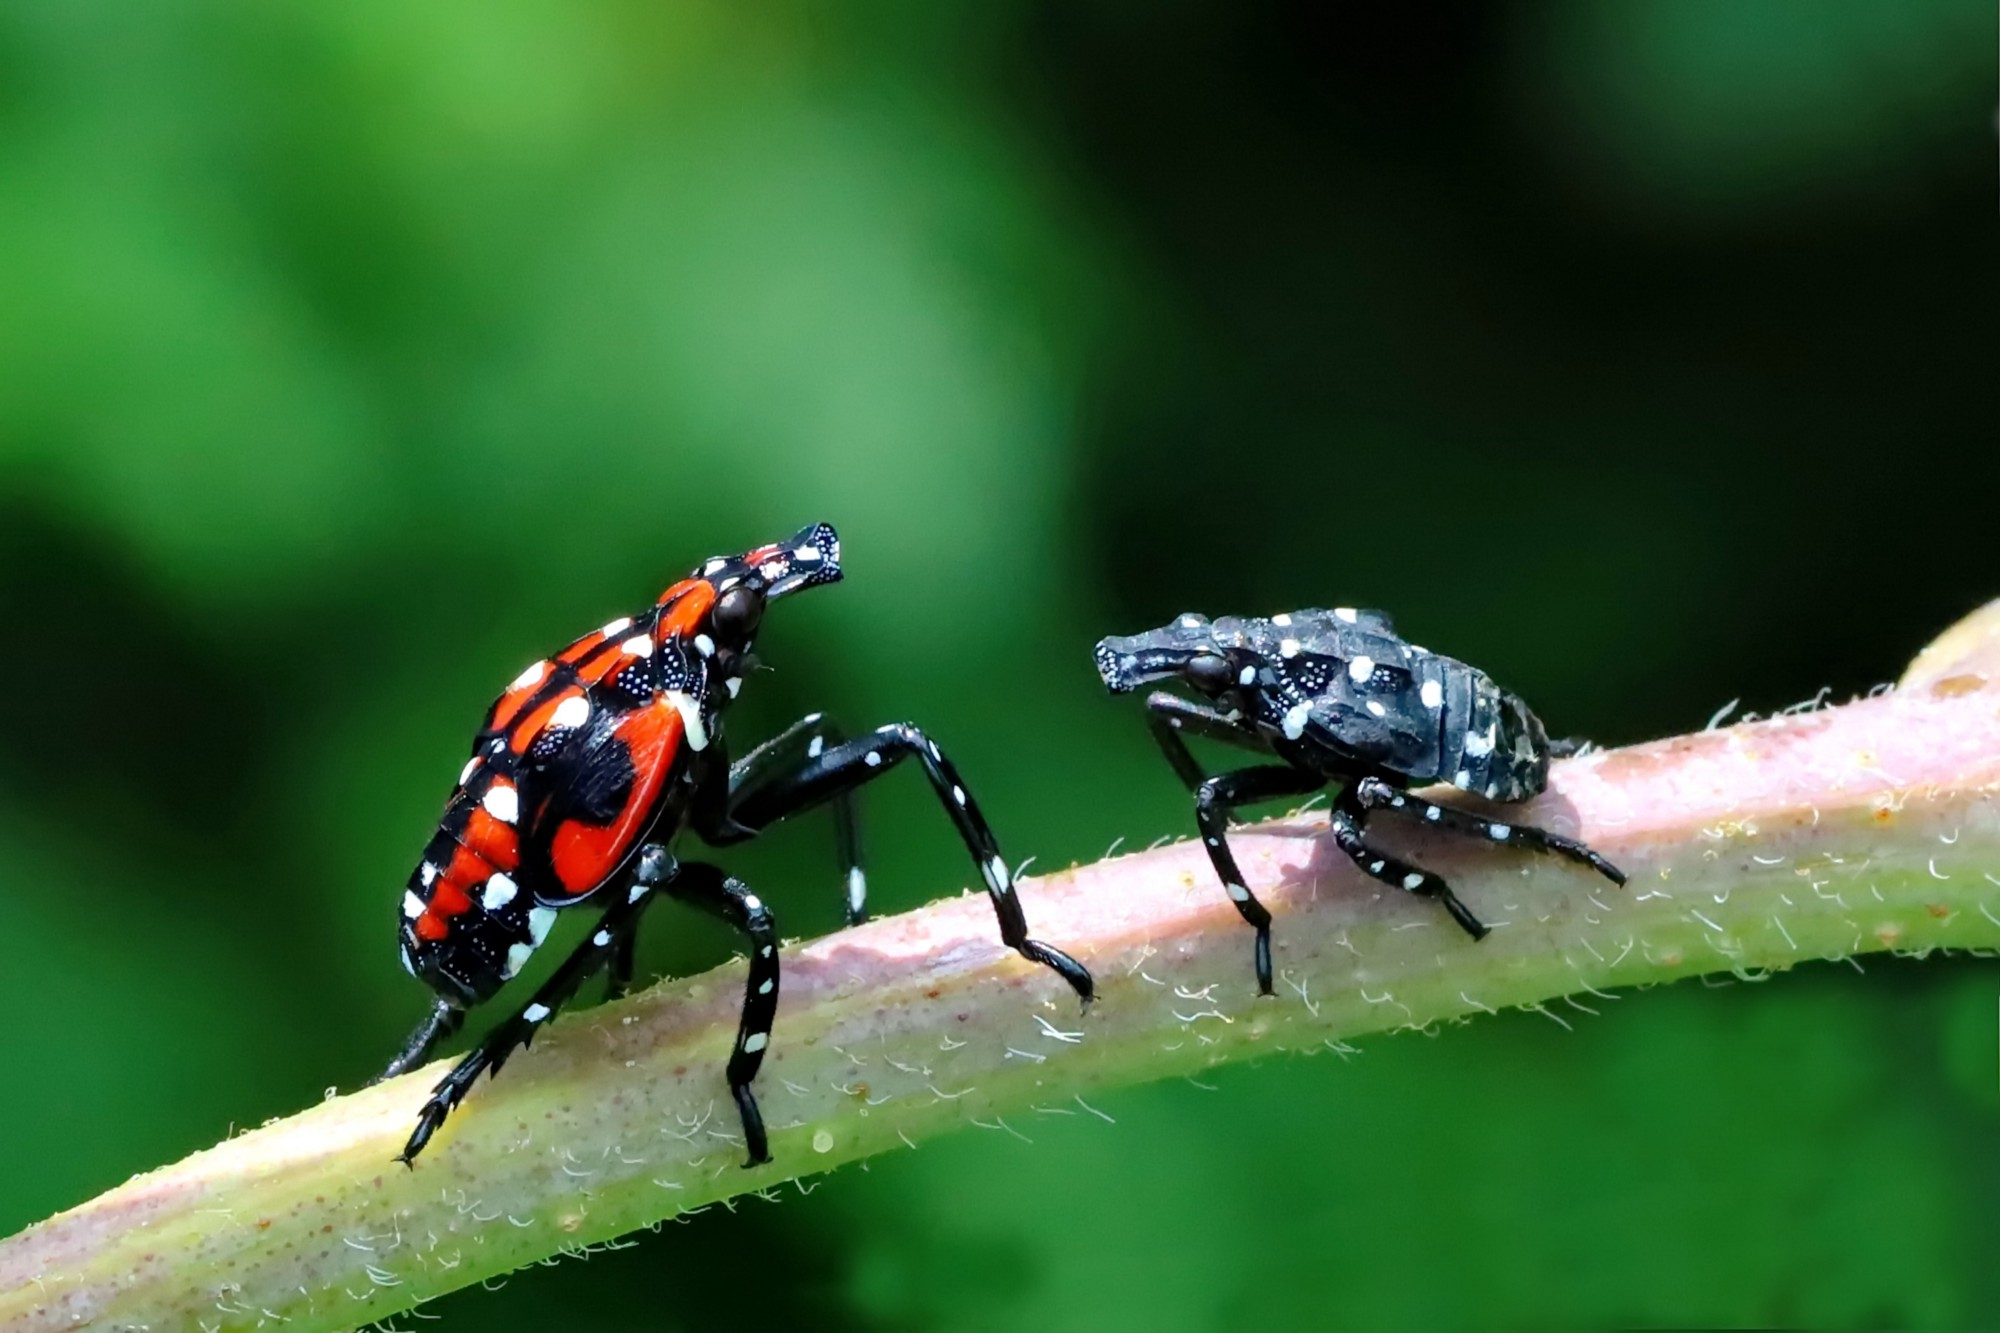 two black, spotted insects on a twig, one on the left has red markings and is larger